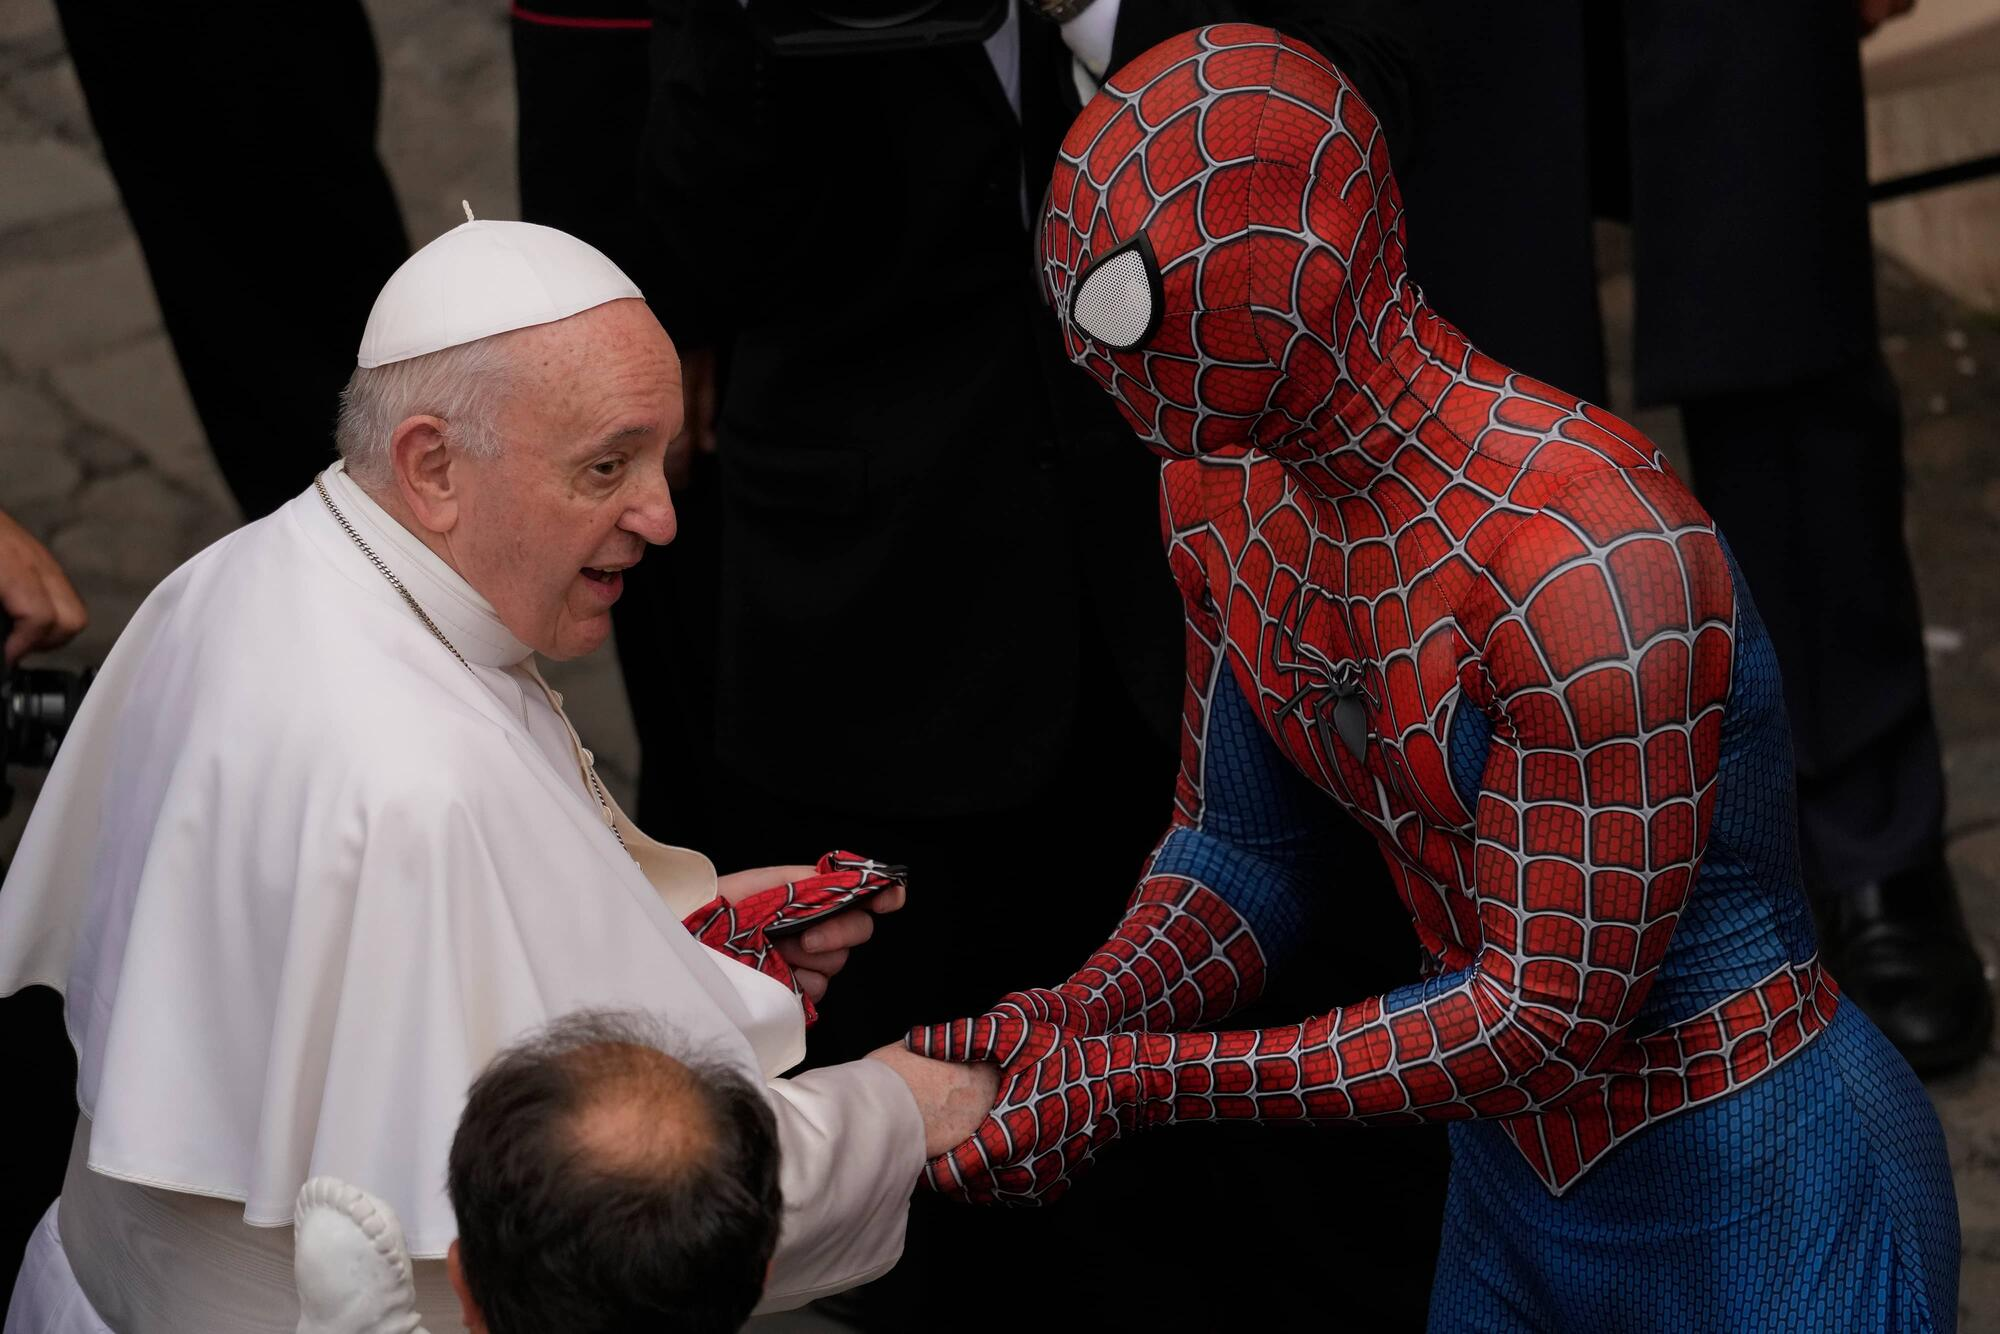 Spider-Man and the Pope ((AP Photo/Andrew Medichini)